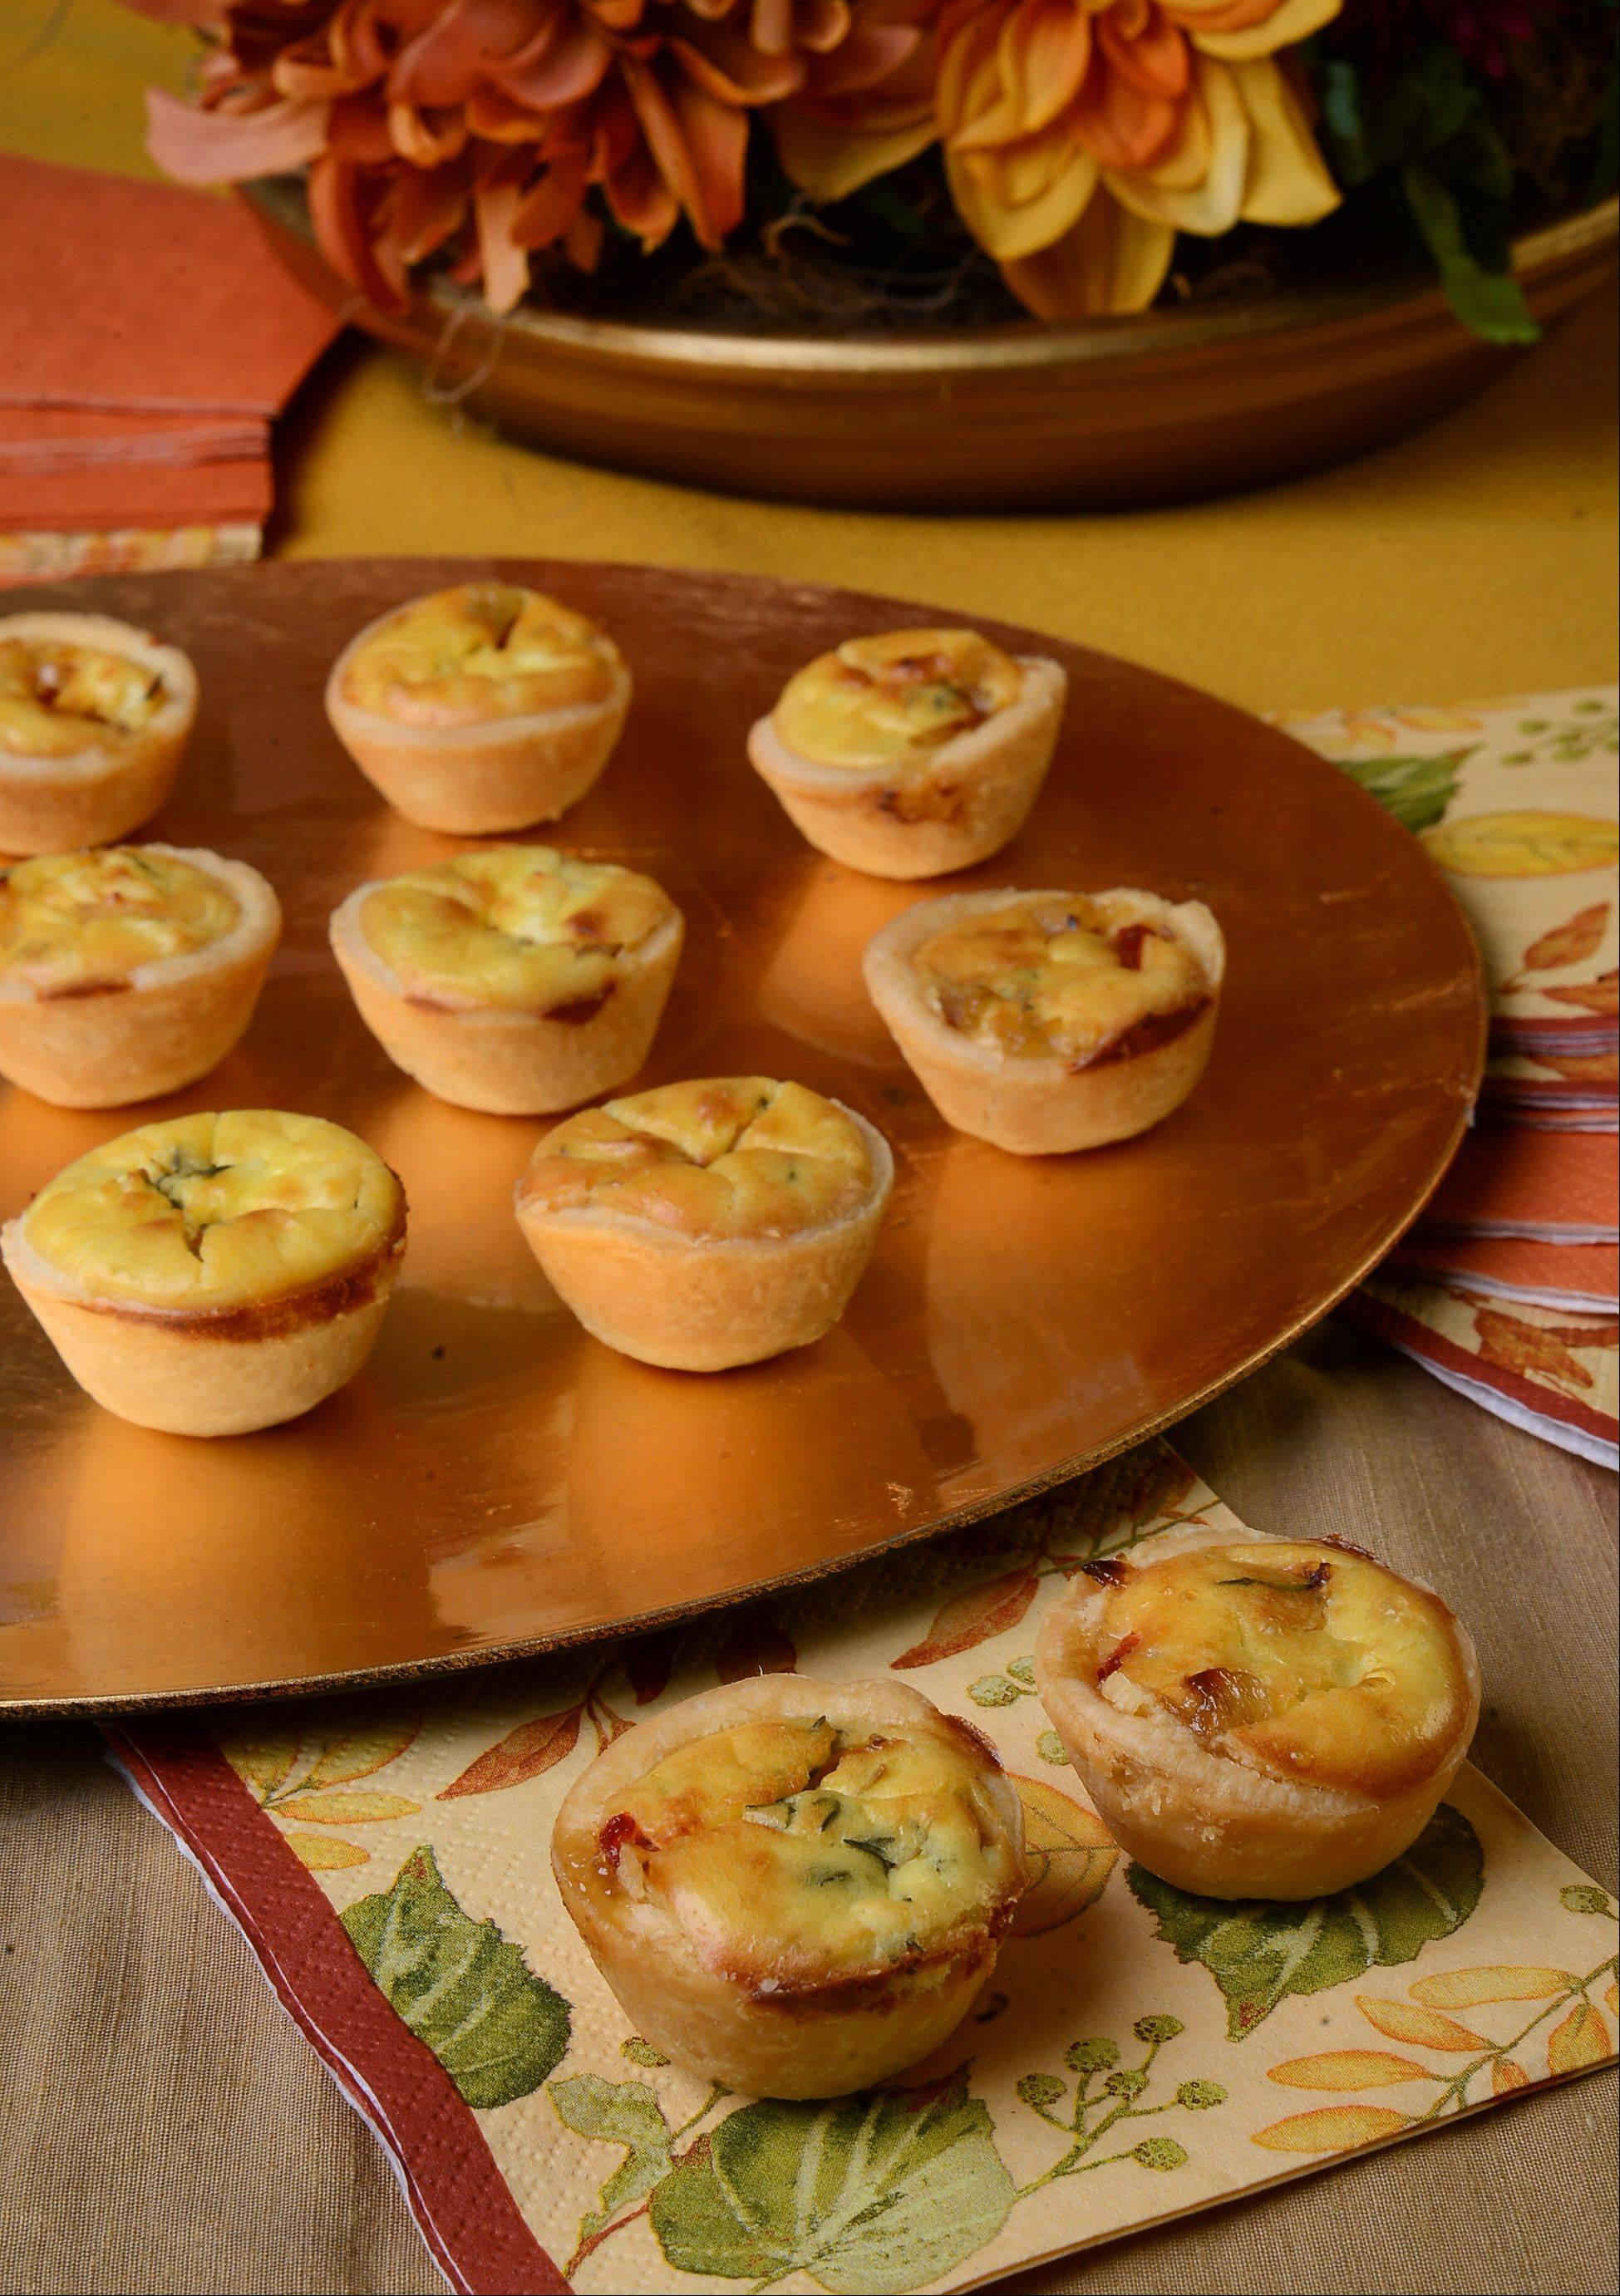 Kids who want to help their parents get ready for a holiday party can put together these cheesy mini quiches. This is a very easy-to-follow recipe.